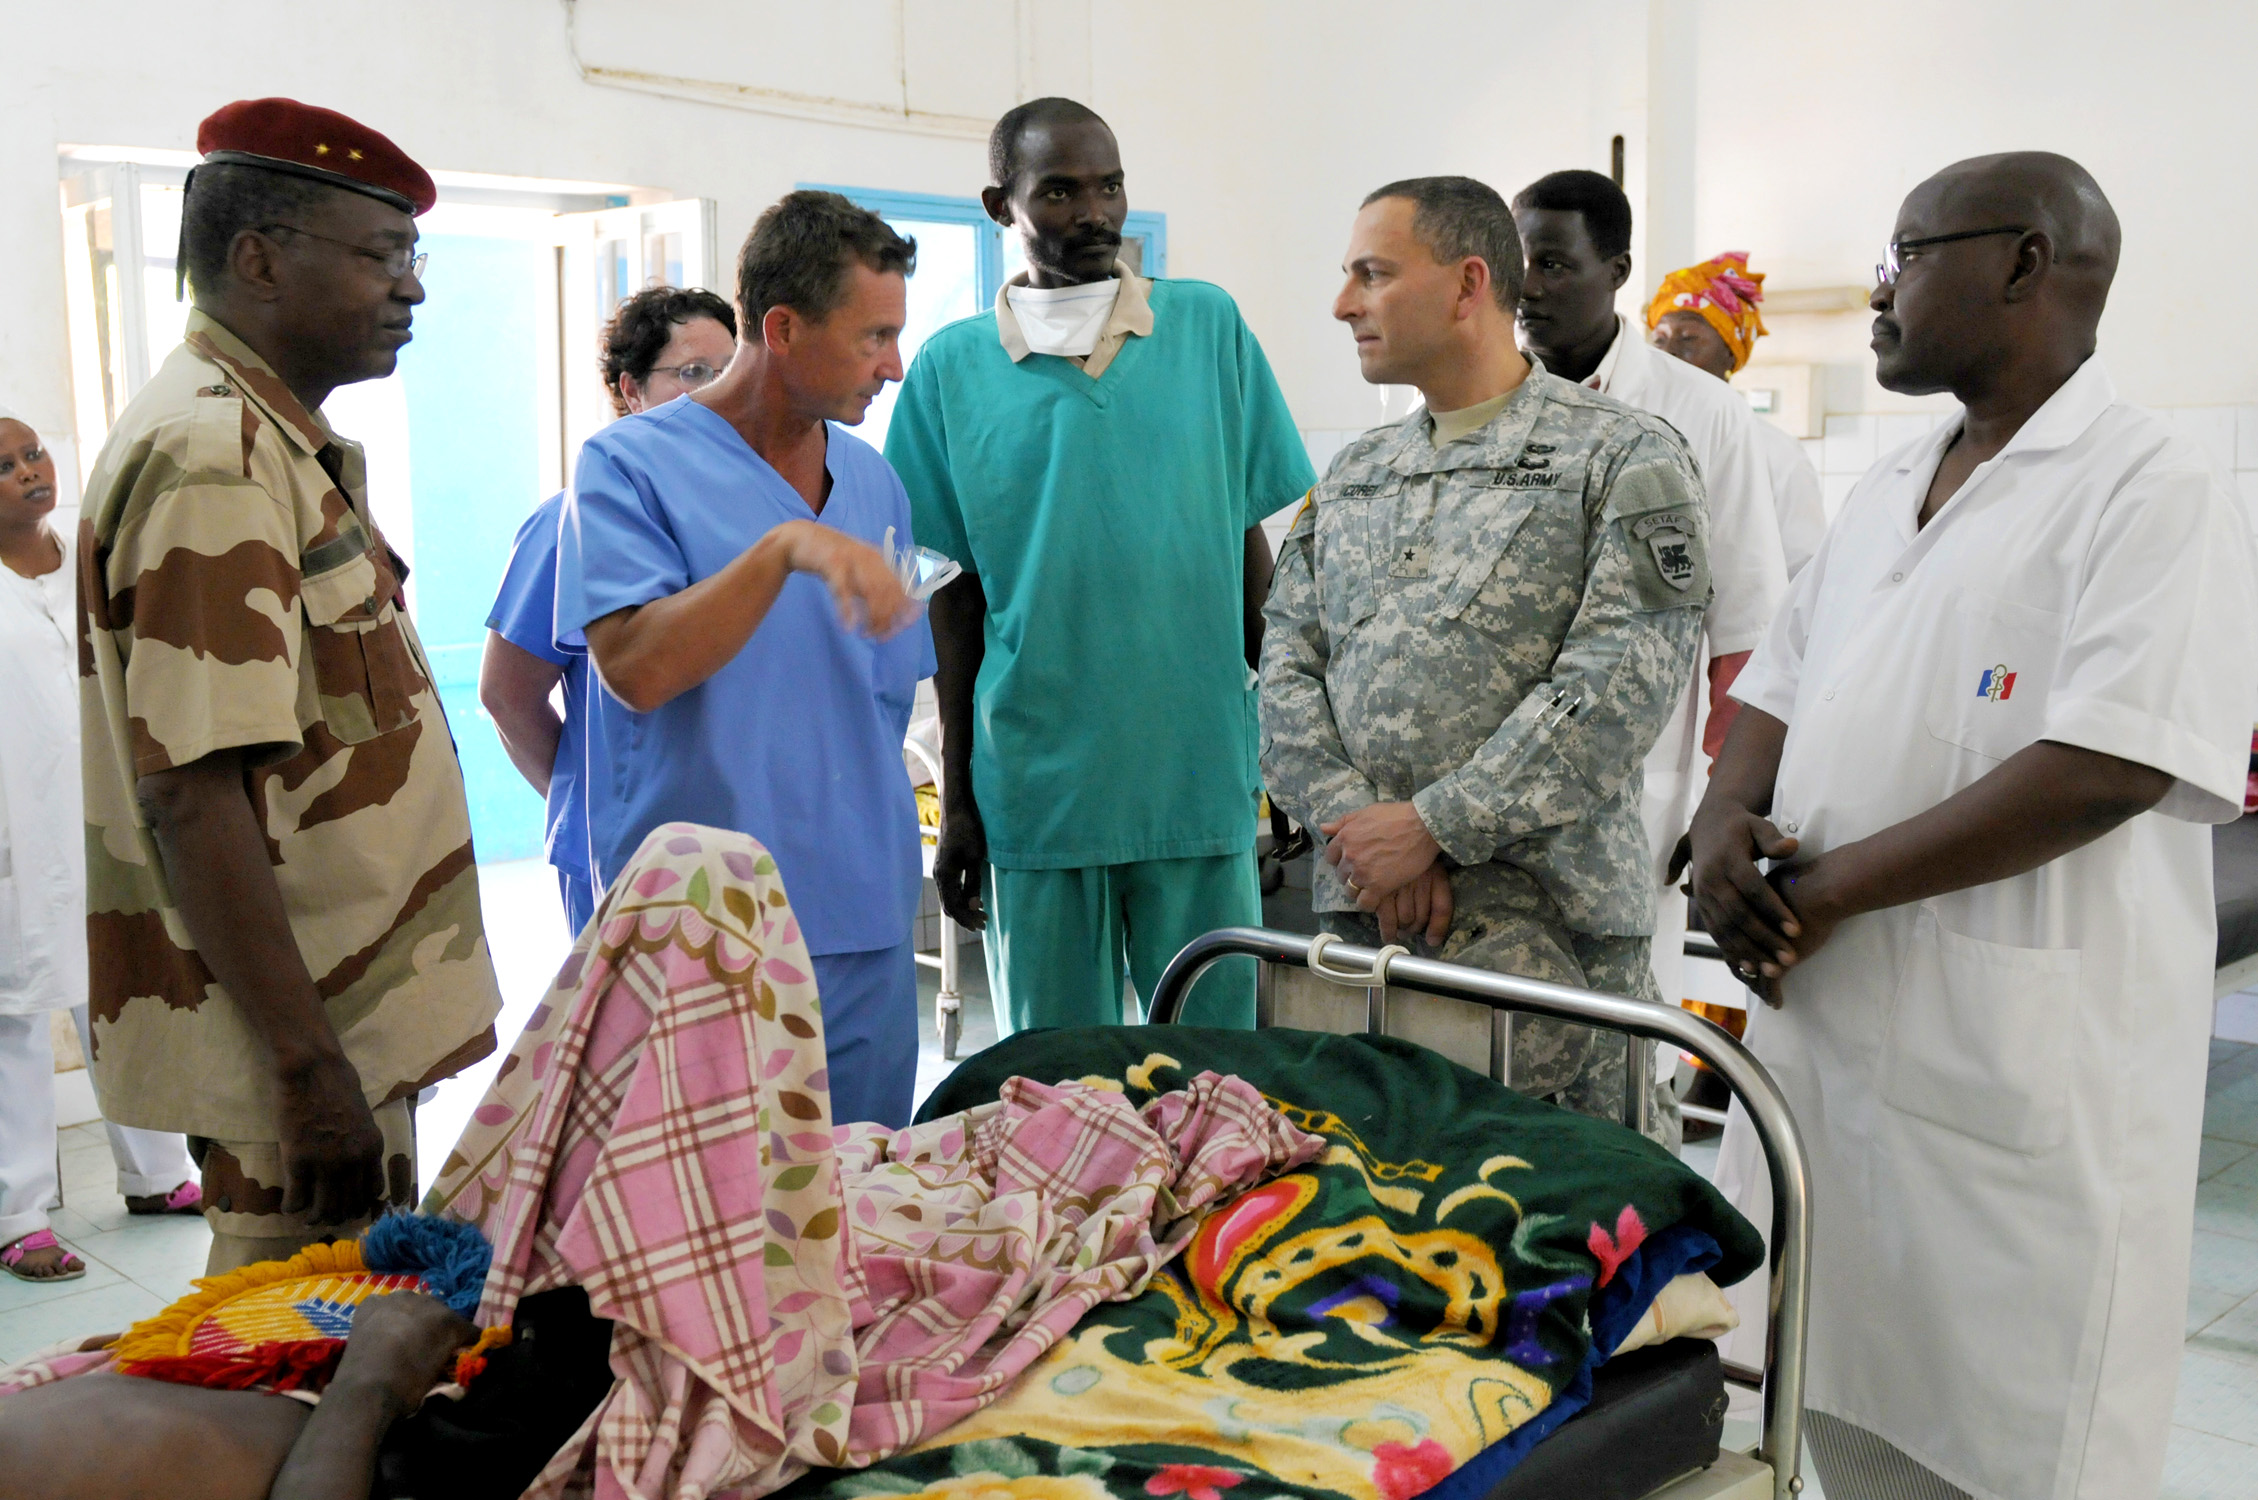 Brig. Gen. Peter Corey, the deputy commanding general of U.S. Army Africa, walks through the patients' ward at the Hospital Militaire D'Instruction in N'Djamena, Chad, April 23. While at HMI, Corey visited the labs, patient wards, and operating rooms. He also observed a surgery and checked in with the U.S. Army Soldiers participating in Medical Readiness and Training Exercise 15-3. The Soldiers have been in Chad for nearly two weeks working alongside Chadian hospital staff conducting consultations with patients, performing and assisting in surgeries, and assessing and treating trauma patients. (U.S. Army Africa photo by Staff Sgt. Andrea Merritt)